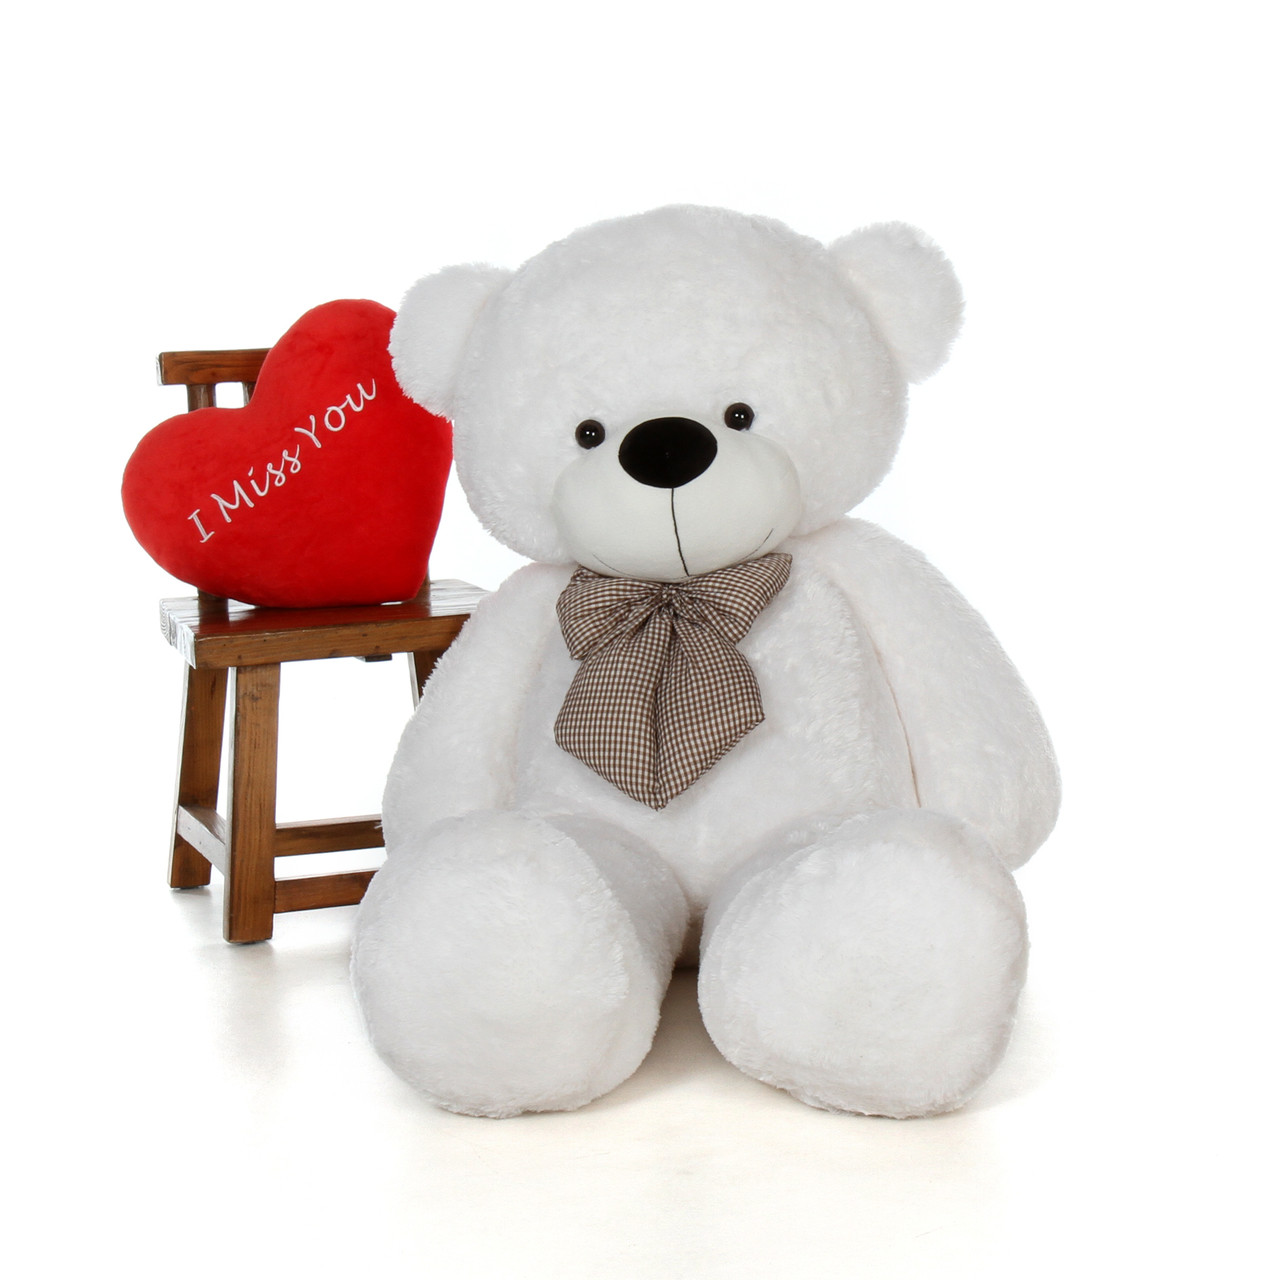 5ft Coco Cuddles for Valentine's Day White Teddy Bear with I Miss You heart pillow